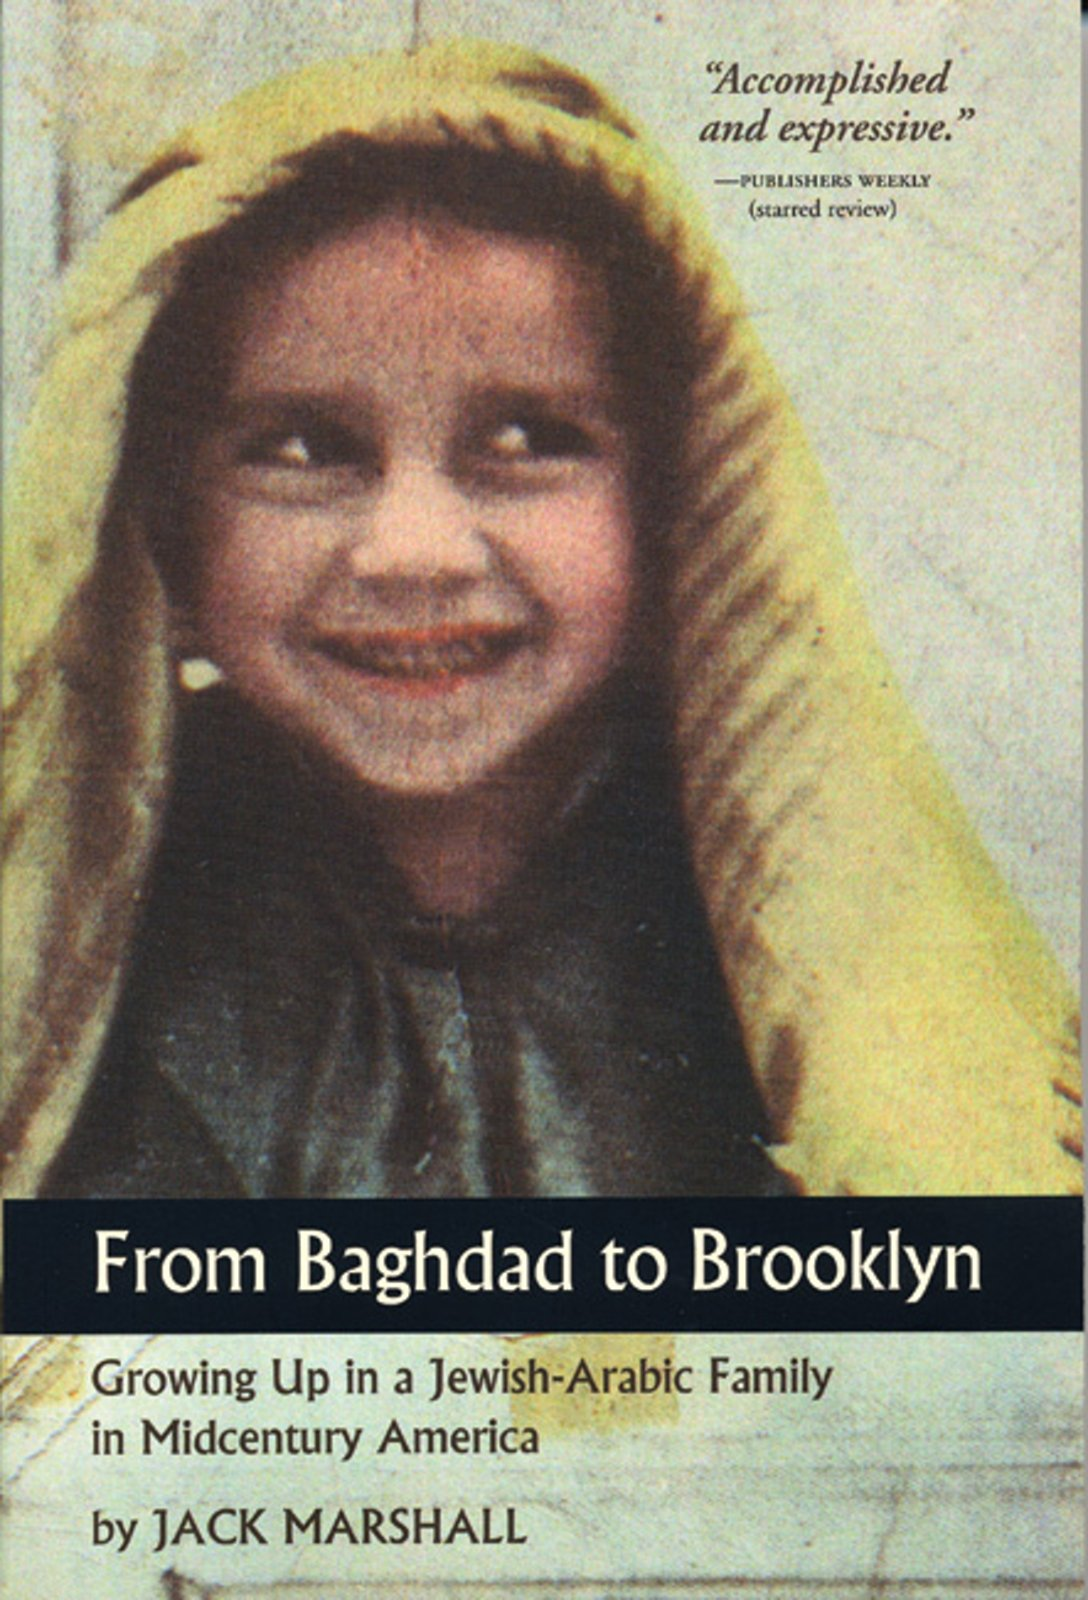 From Baghdad to Brooklyn: Growing Up in a Jewish-Arabic Family in Midcentury America PDF